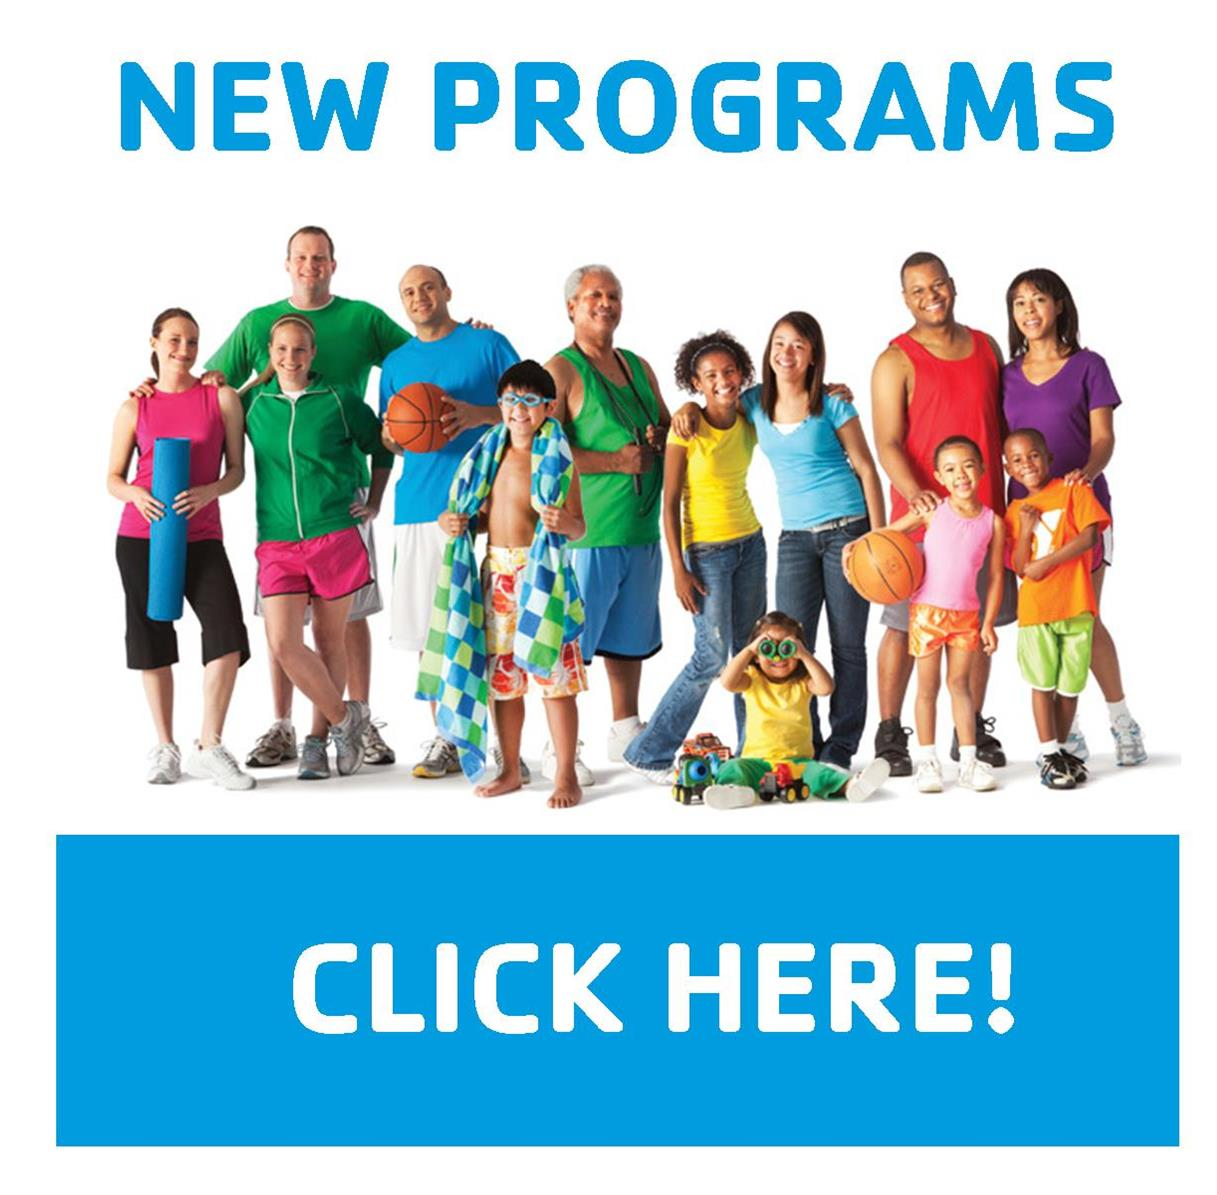 http://mtrymca.org/sites/mtrymca.org/assets/images/home/new-programs.jpg